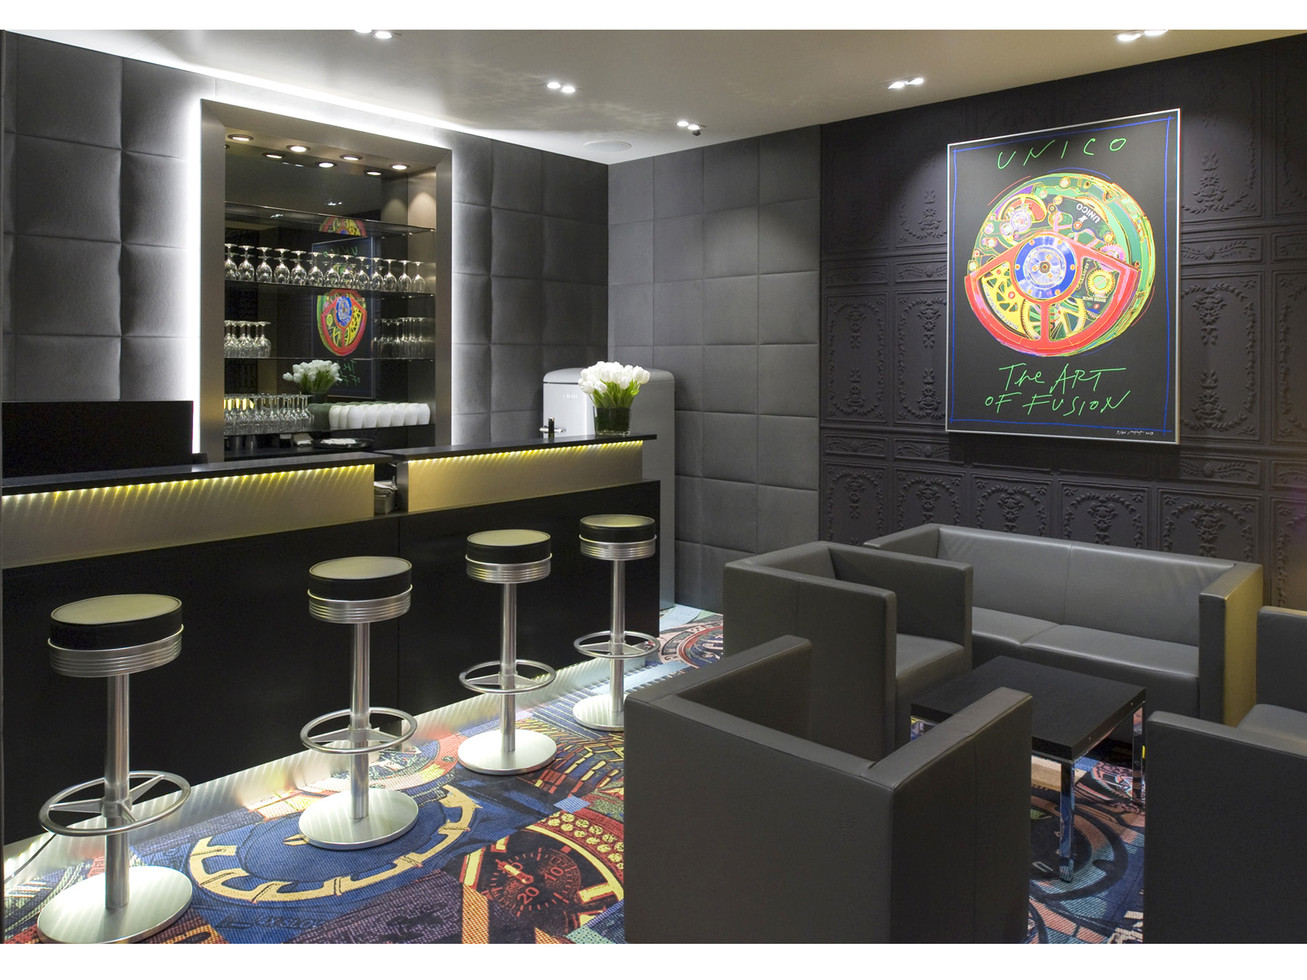 Baselworld interior - Reception/Waiting lounge bar